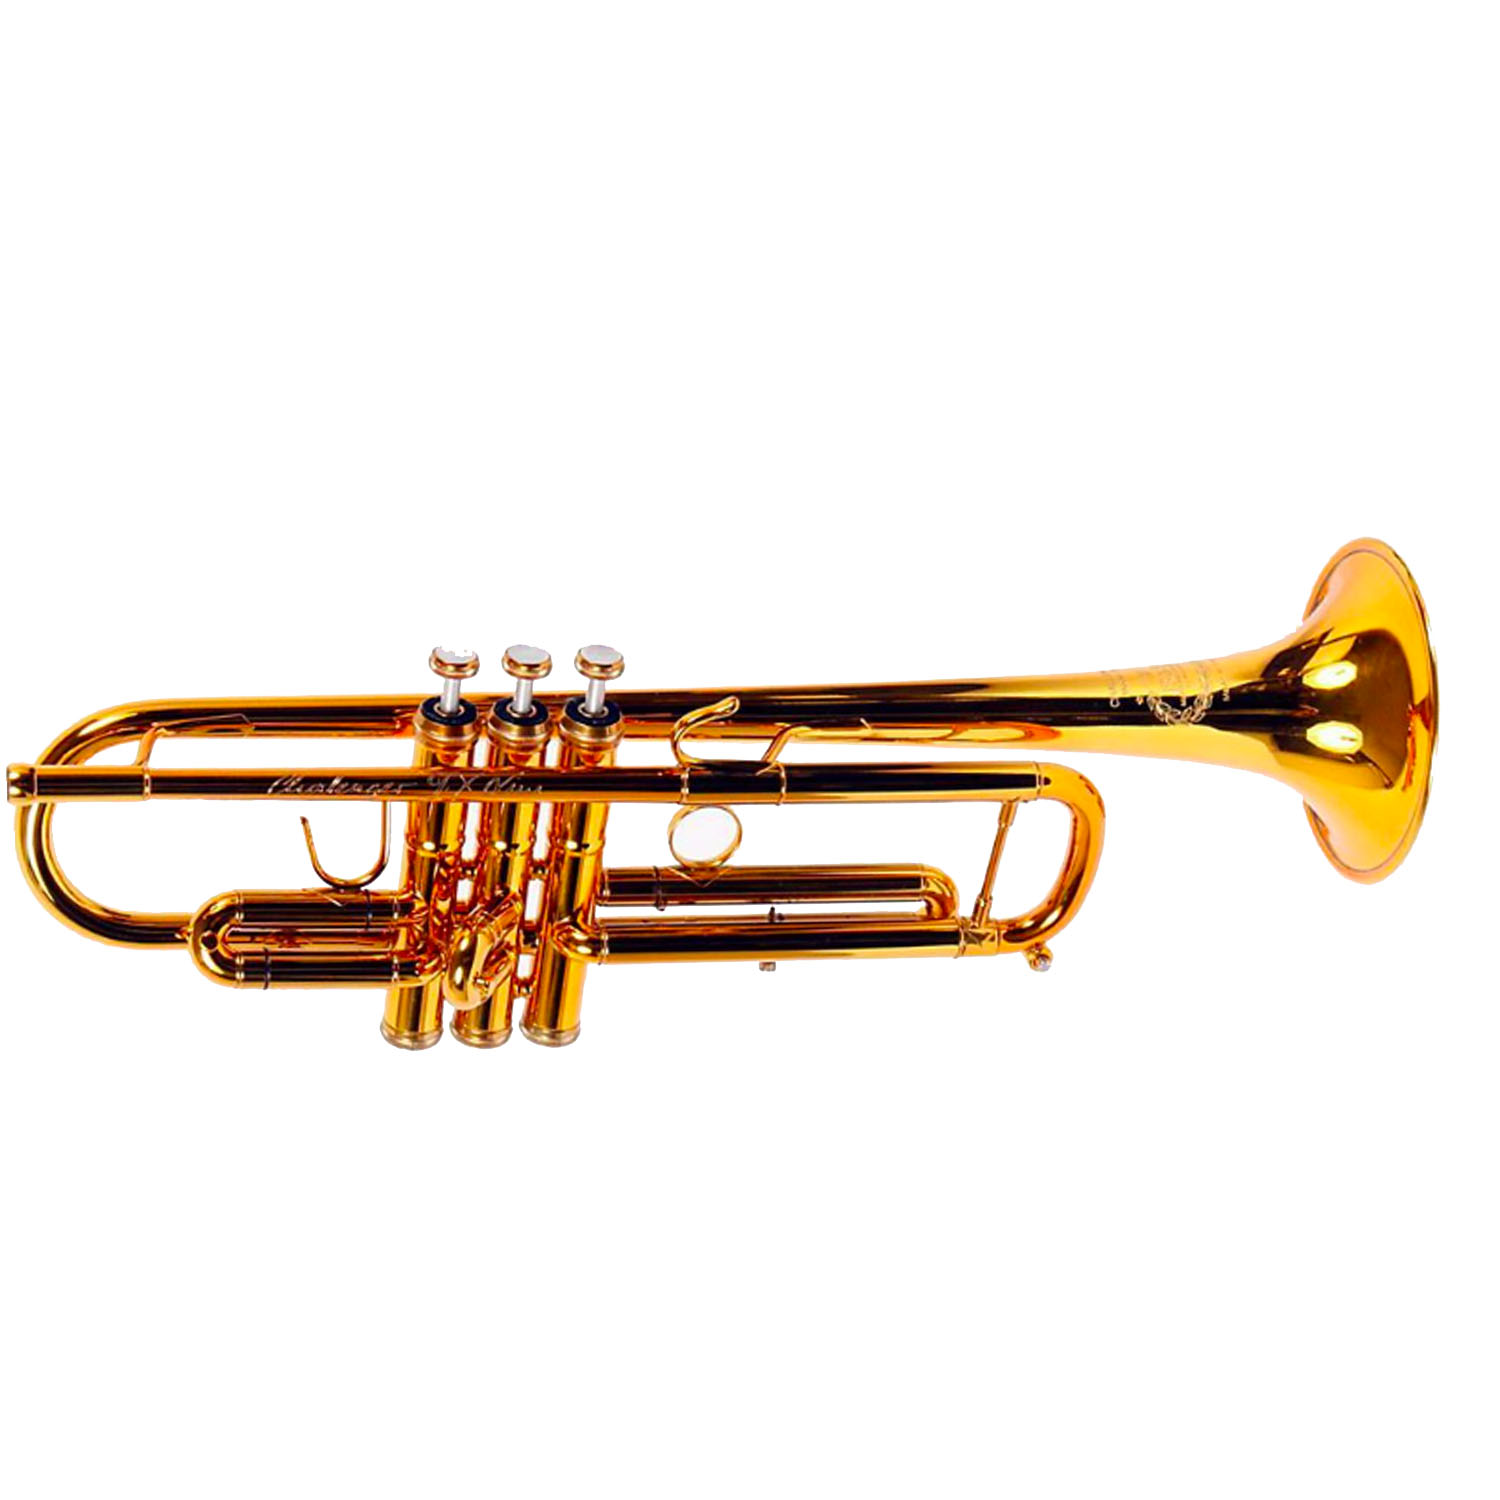 "B&S ""Challenger II"" Professional Bb Trumpet - #37 Bell - Lacquer Finish - Reverse Leadpipe"